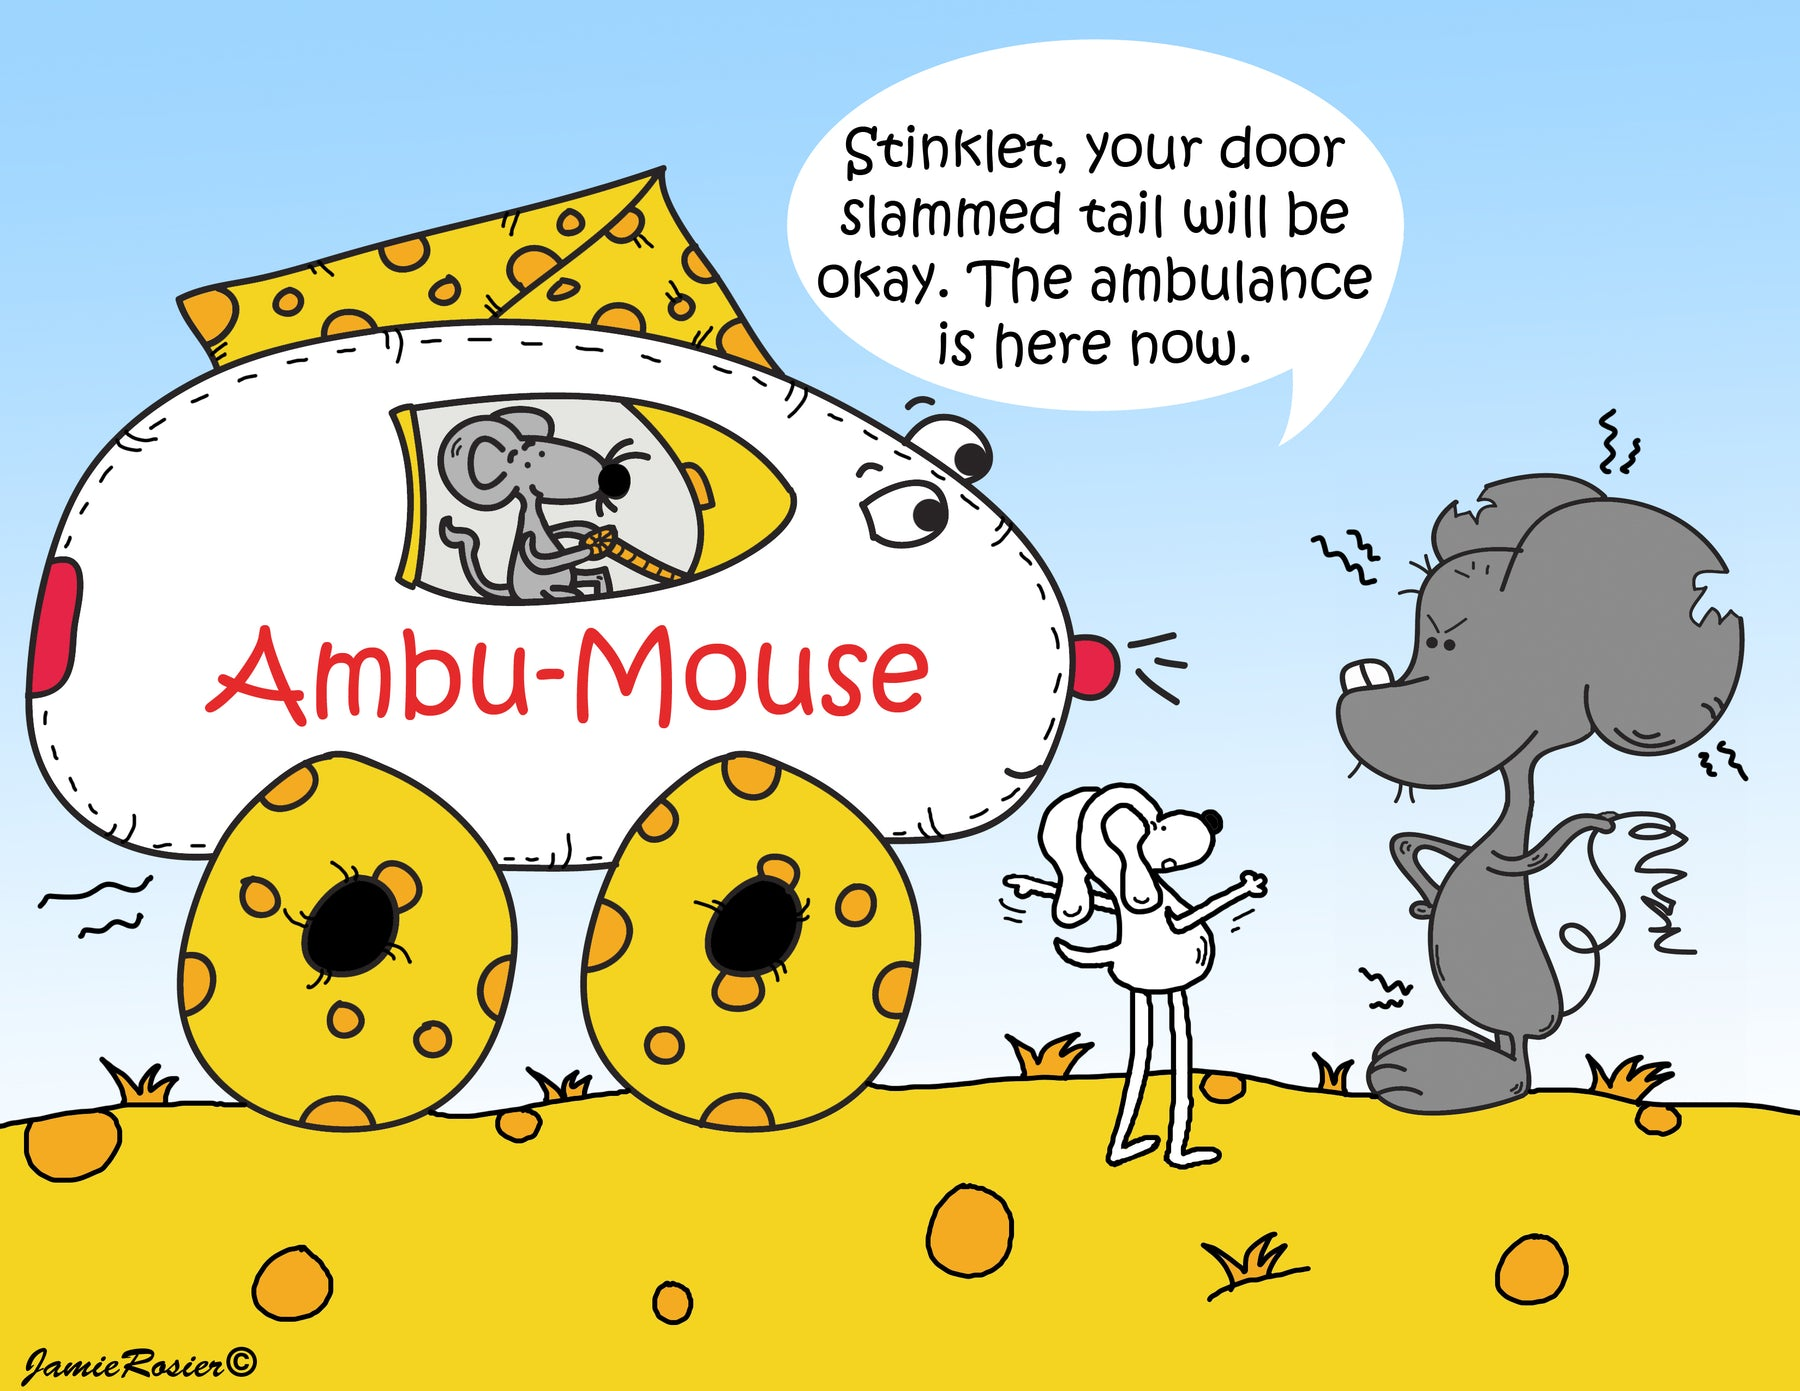 Meet Ambu-Mouse. He is the ambulance driver for the town of Cheeseville. His car is made of cheese. The roof of of his vehicle and tires are made of Cheddar cheese and the body is made of Mozzarella cheese. By Jamie Rosier © DogAndMouseCompany.com